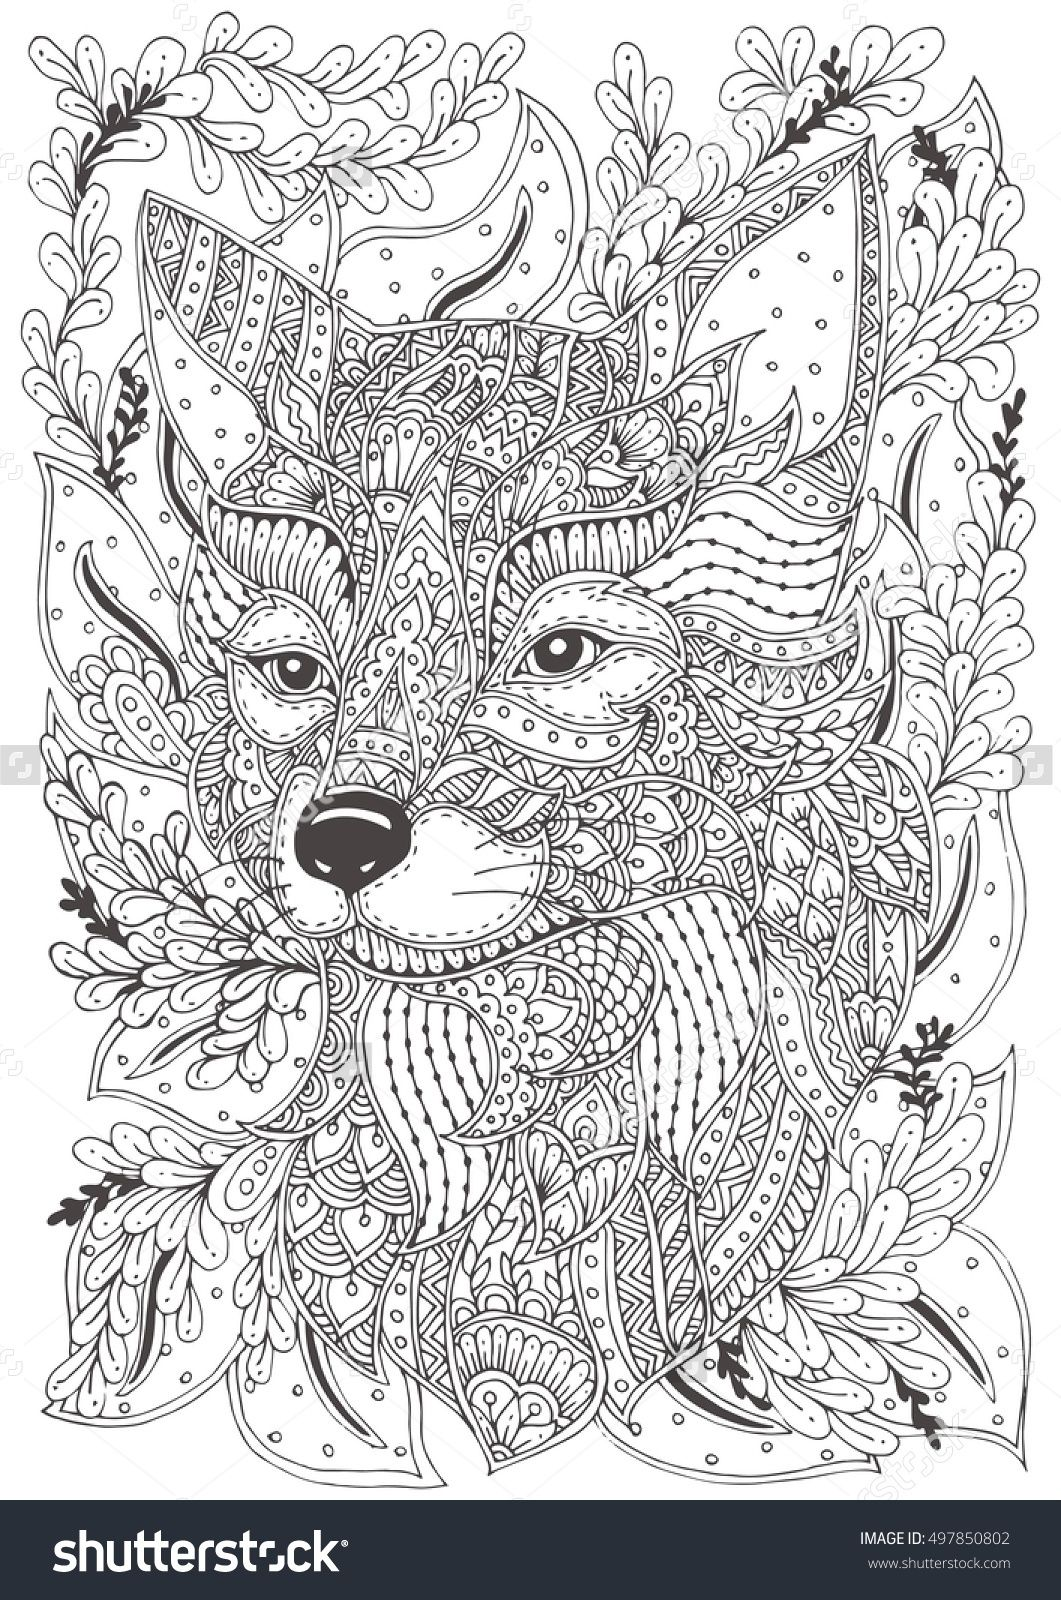 pattern coloring pages for adults Fox. Hand drawn with ethnic floral doodle pattern. Coloring page  pattern coloring pages for adults